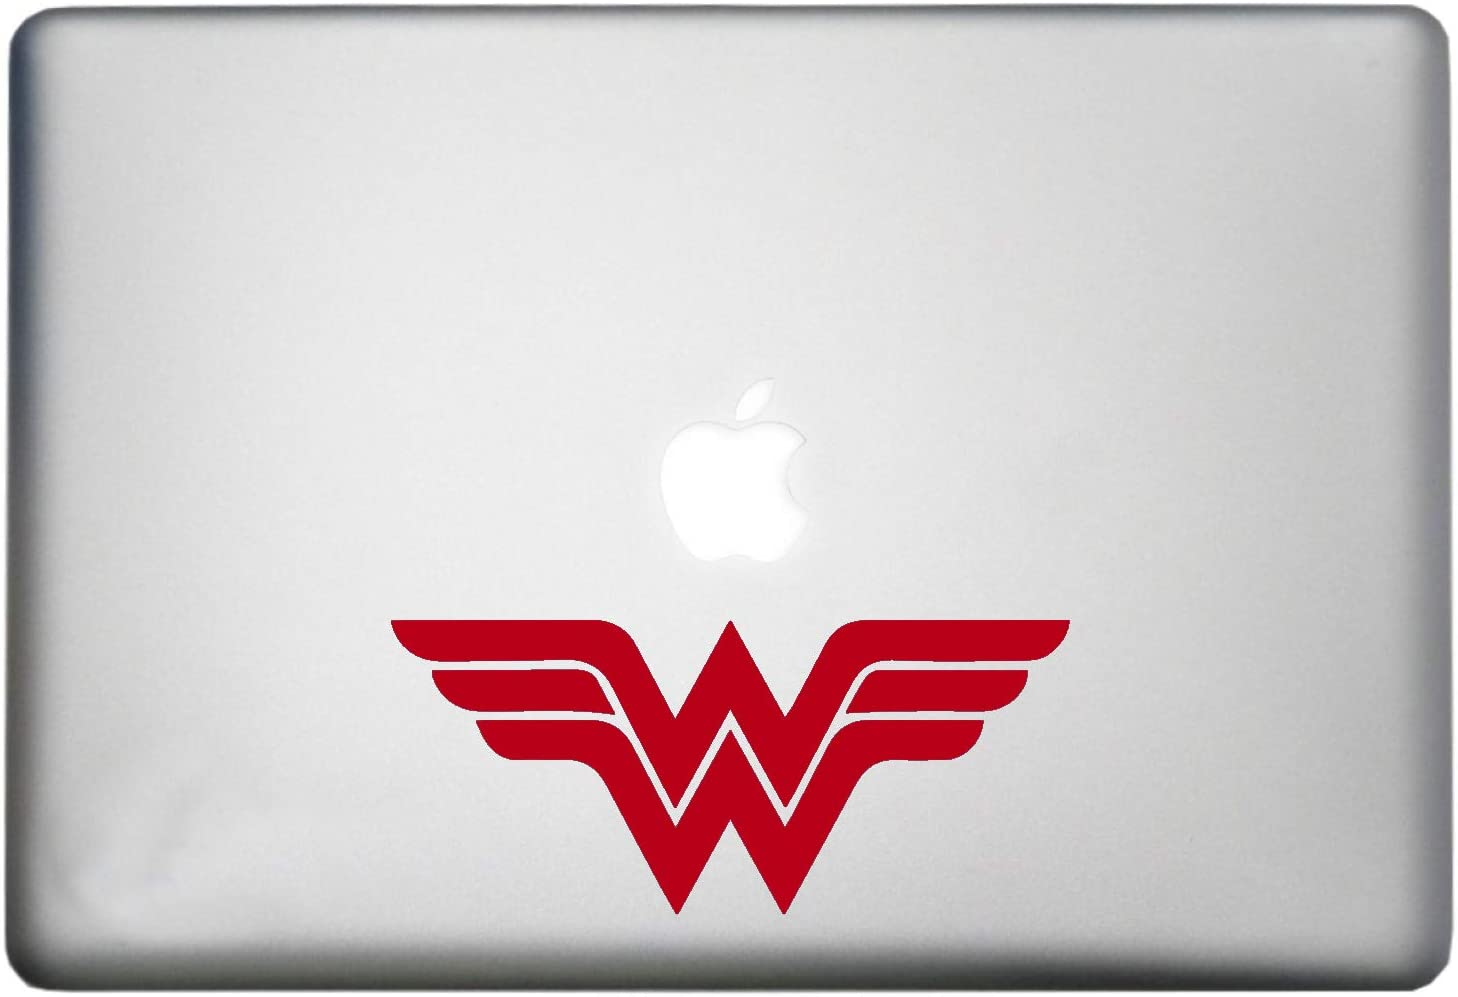 DC Comic Wonder Woman Superhero Sticker MacBook Pro Vinyl Decal is a Wonder Woman Decor Theme Symbol Decal. Laptop Sizes 11, 12, 13 and 15 inch. Many Available Colors-RED